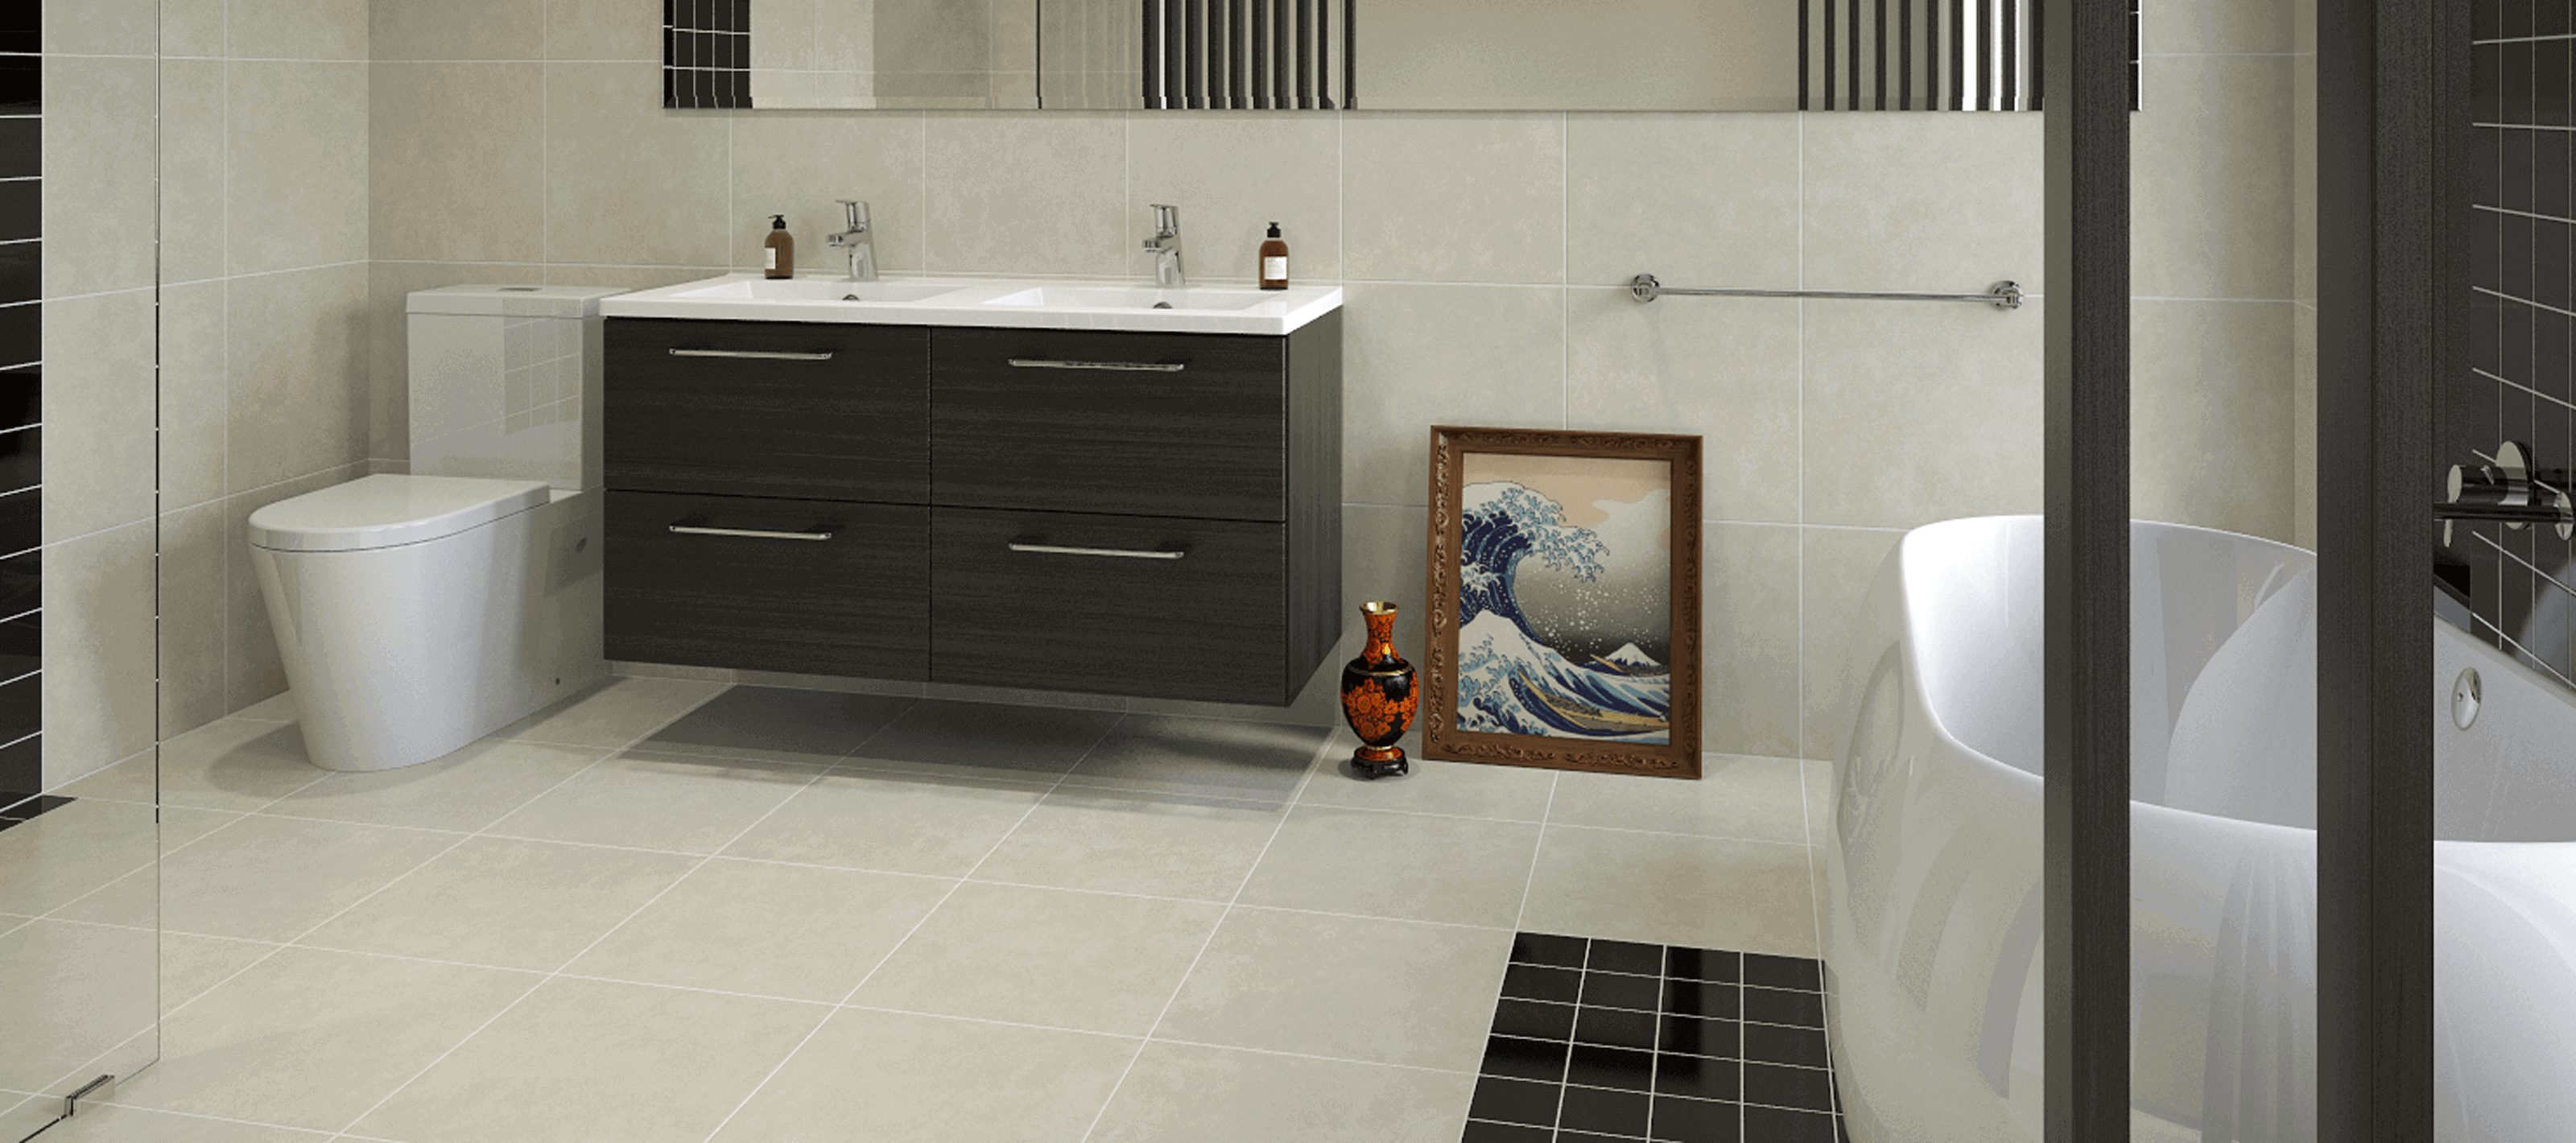 baths basins tiles vanities